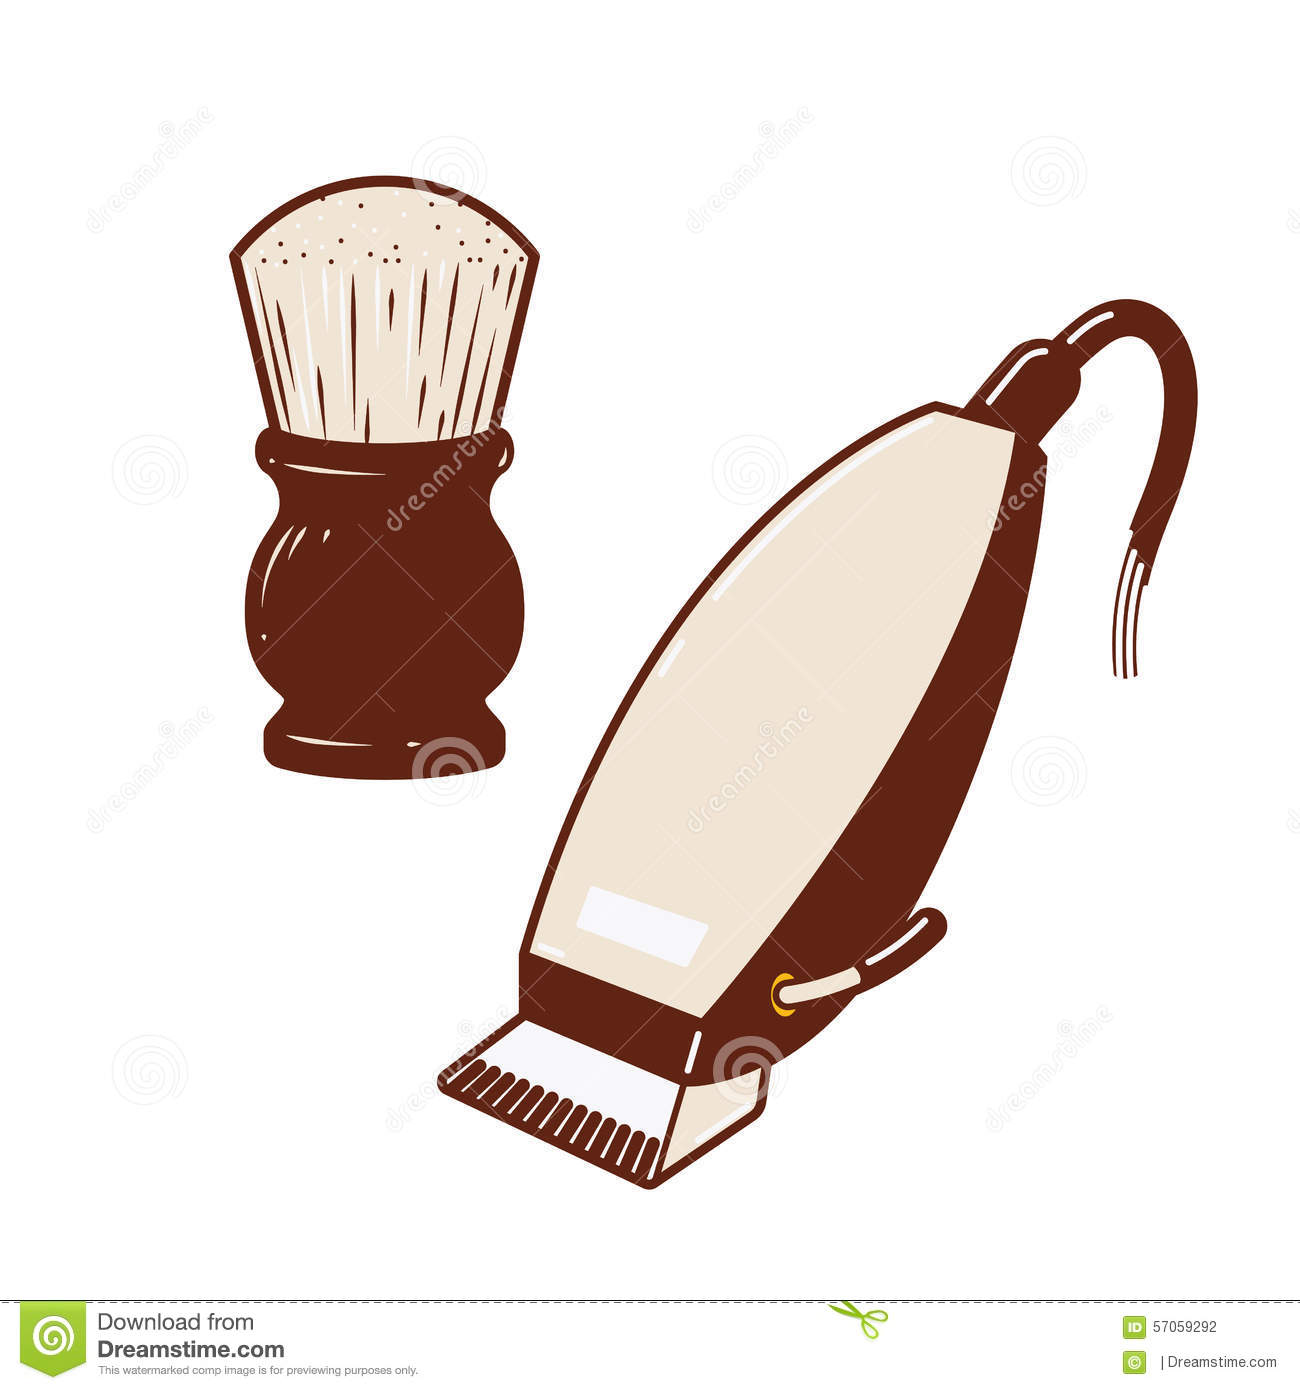 Electric Hair Clipper & Powder Brush Stock Vector - Image ...